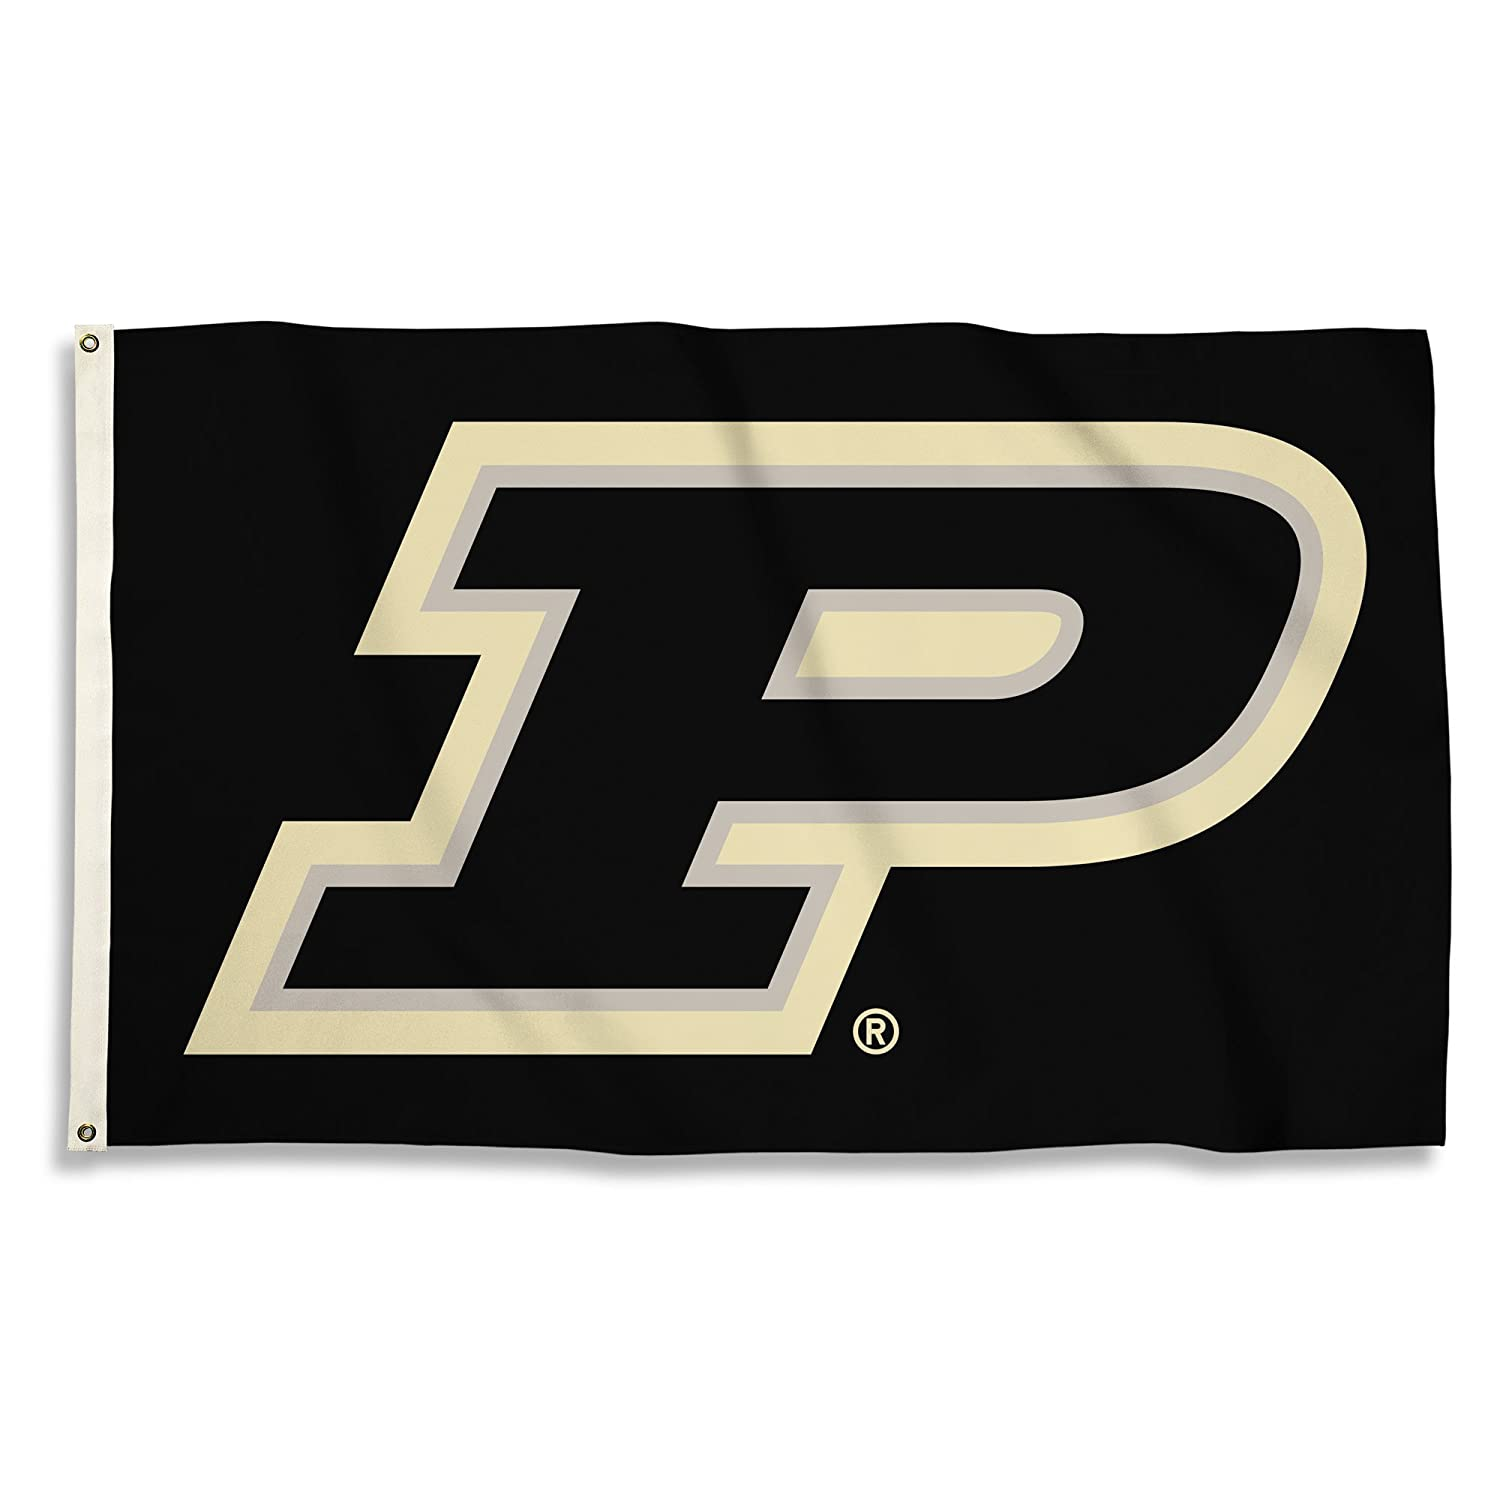 BSI PRODUCTS, INC. - Purdue Boilermakers 3'x5' Flag with Heavy-Duty Brass Grommets - PU Football, Basketball & Baseball Pride - High Durability - Designed for Indoor or Outdoor Use - Great Gift Idea